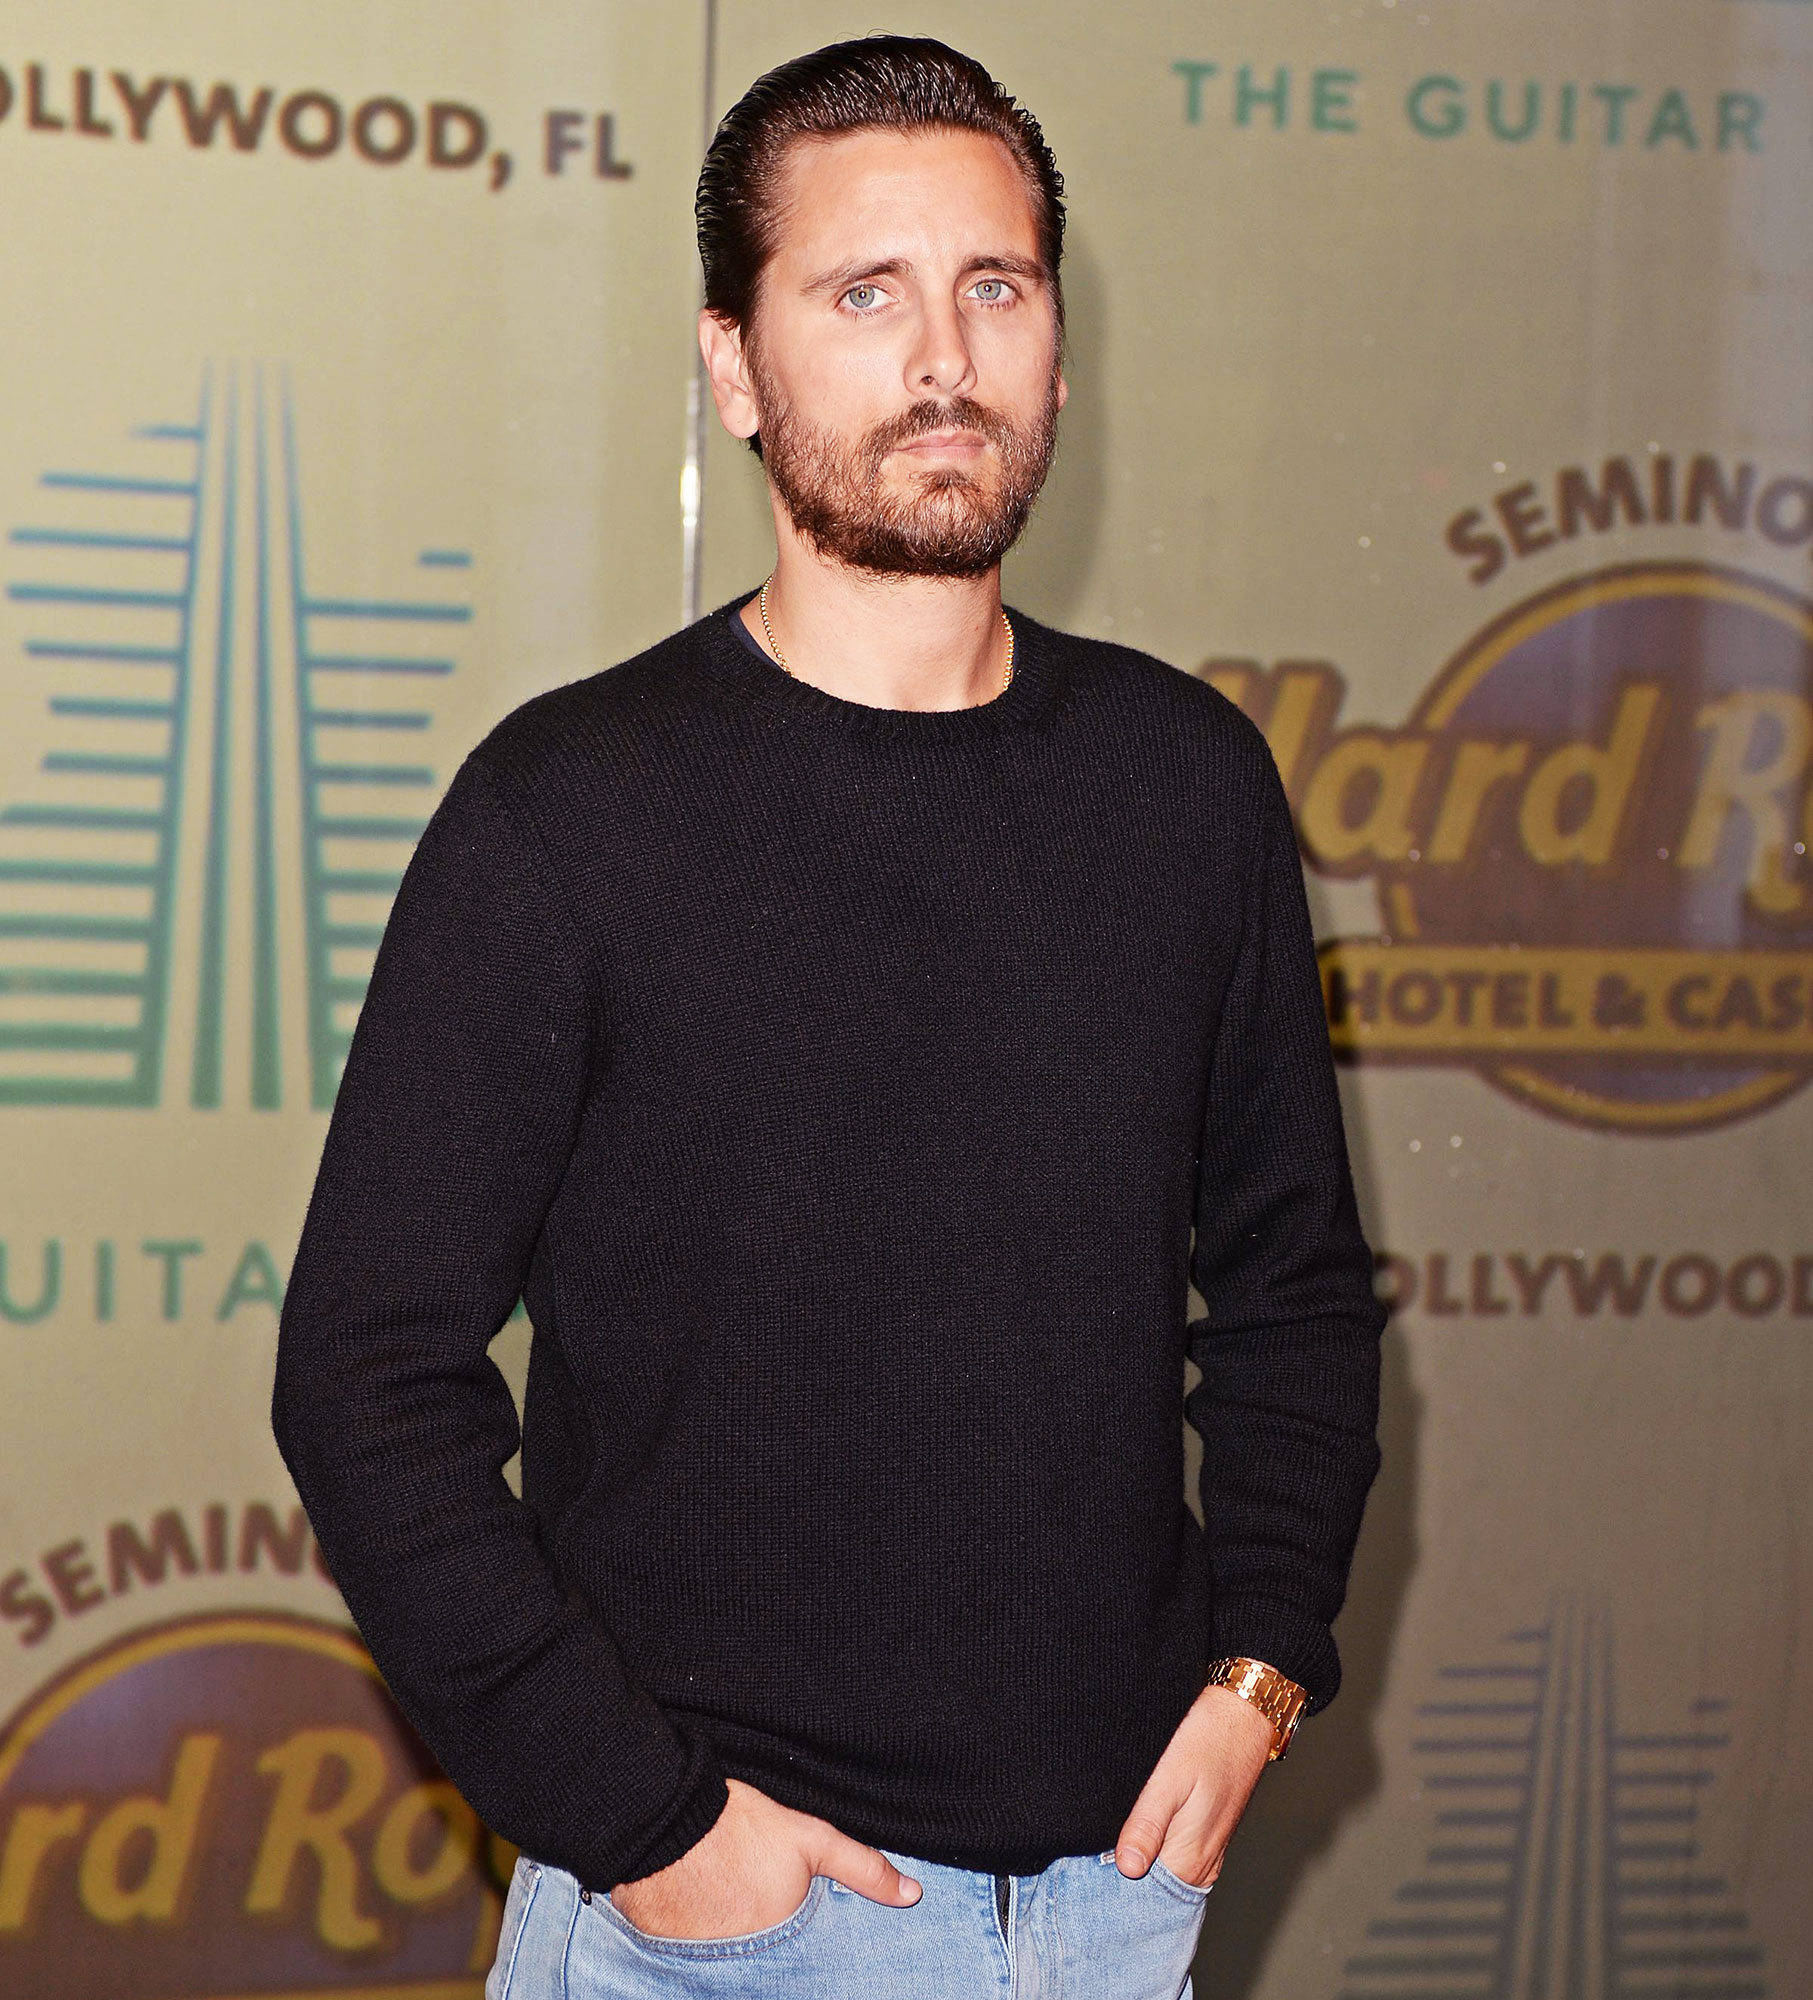 Scott Disick at Seminole Hard Rock Hotel and Casino Checks Into Colorado Rehab for Substance Abuse